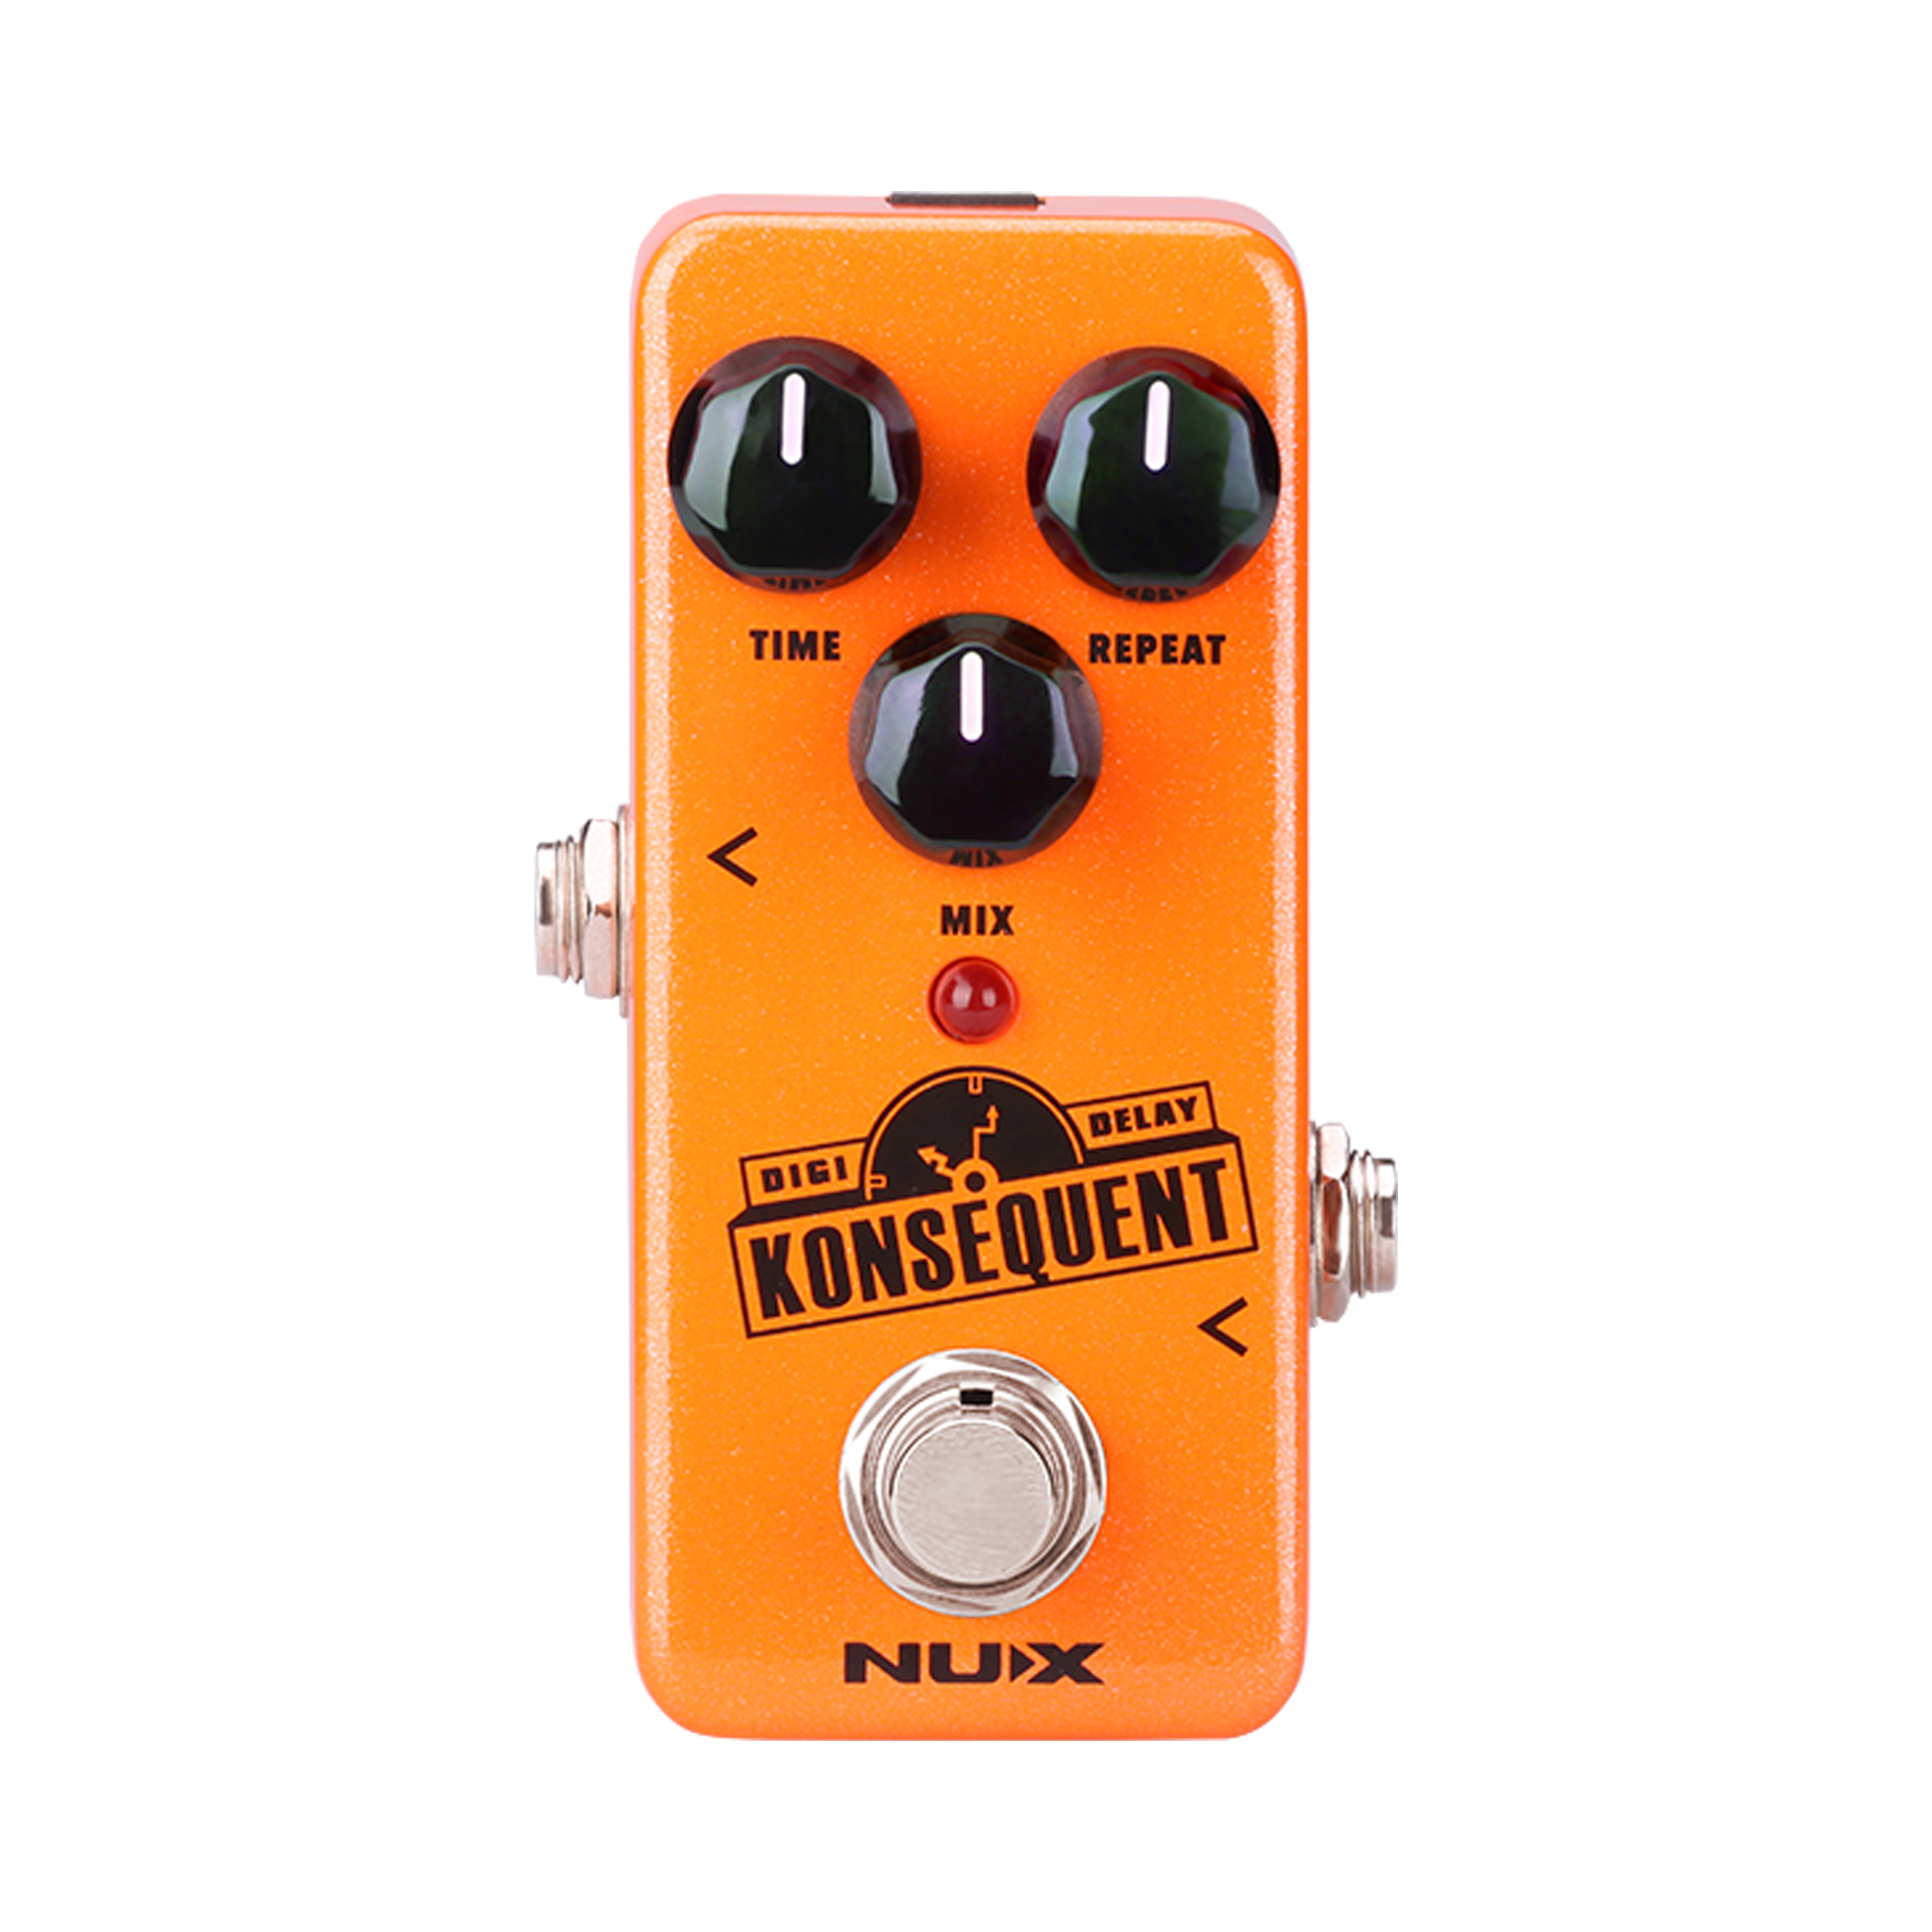 NUX Konsequent Digital Delay Guitar Effect Pedal Dotted 8 / Simple Delay Modes Mini Core Series Stompbox has Re-defined delay nux pmx 2 multi channel mini mixer 30